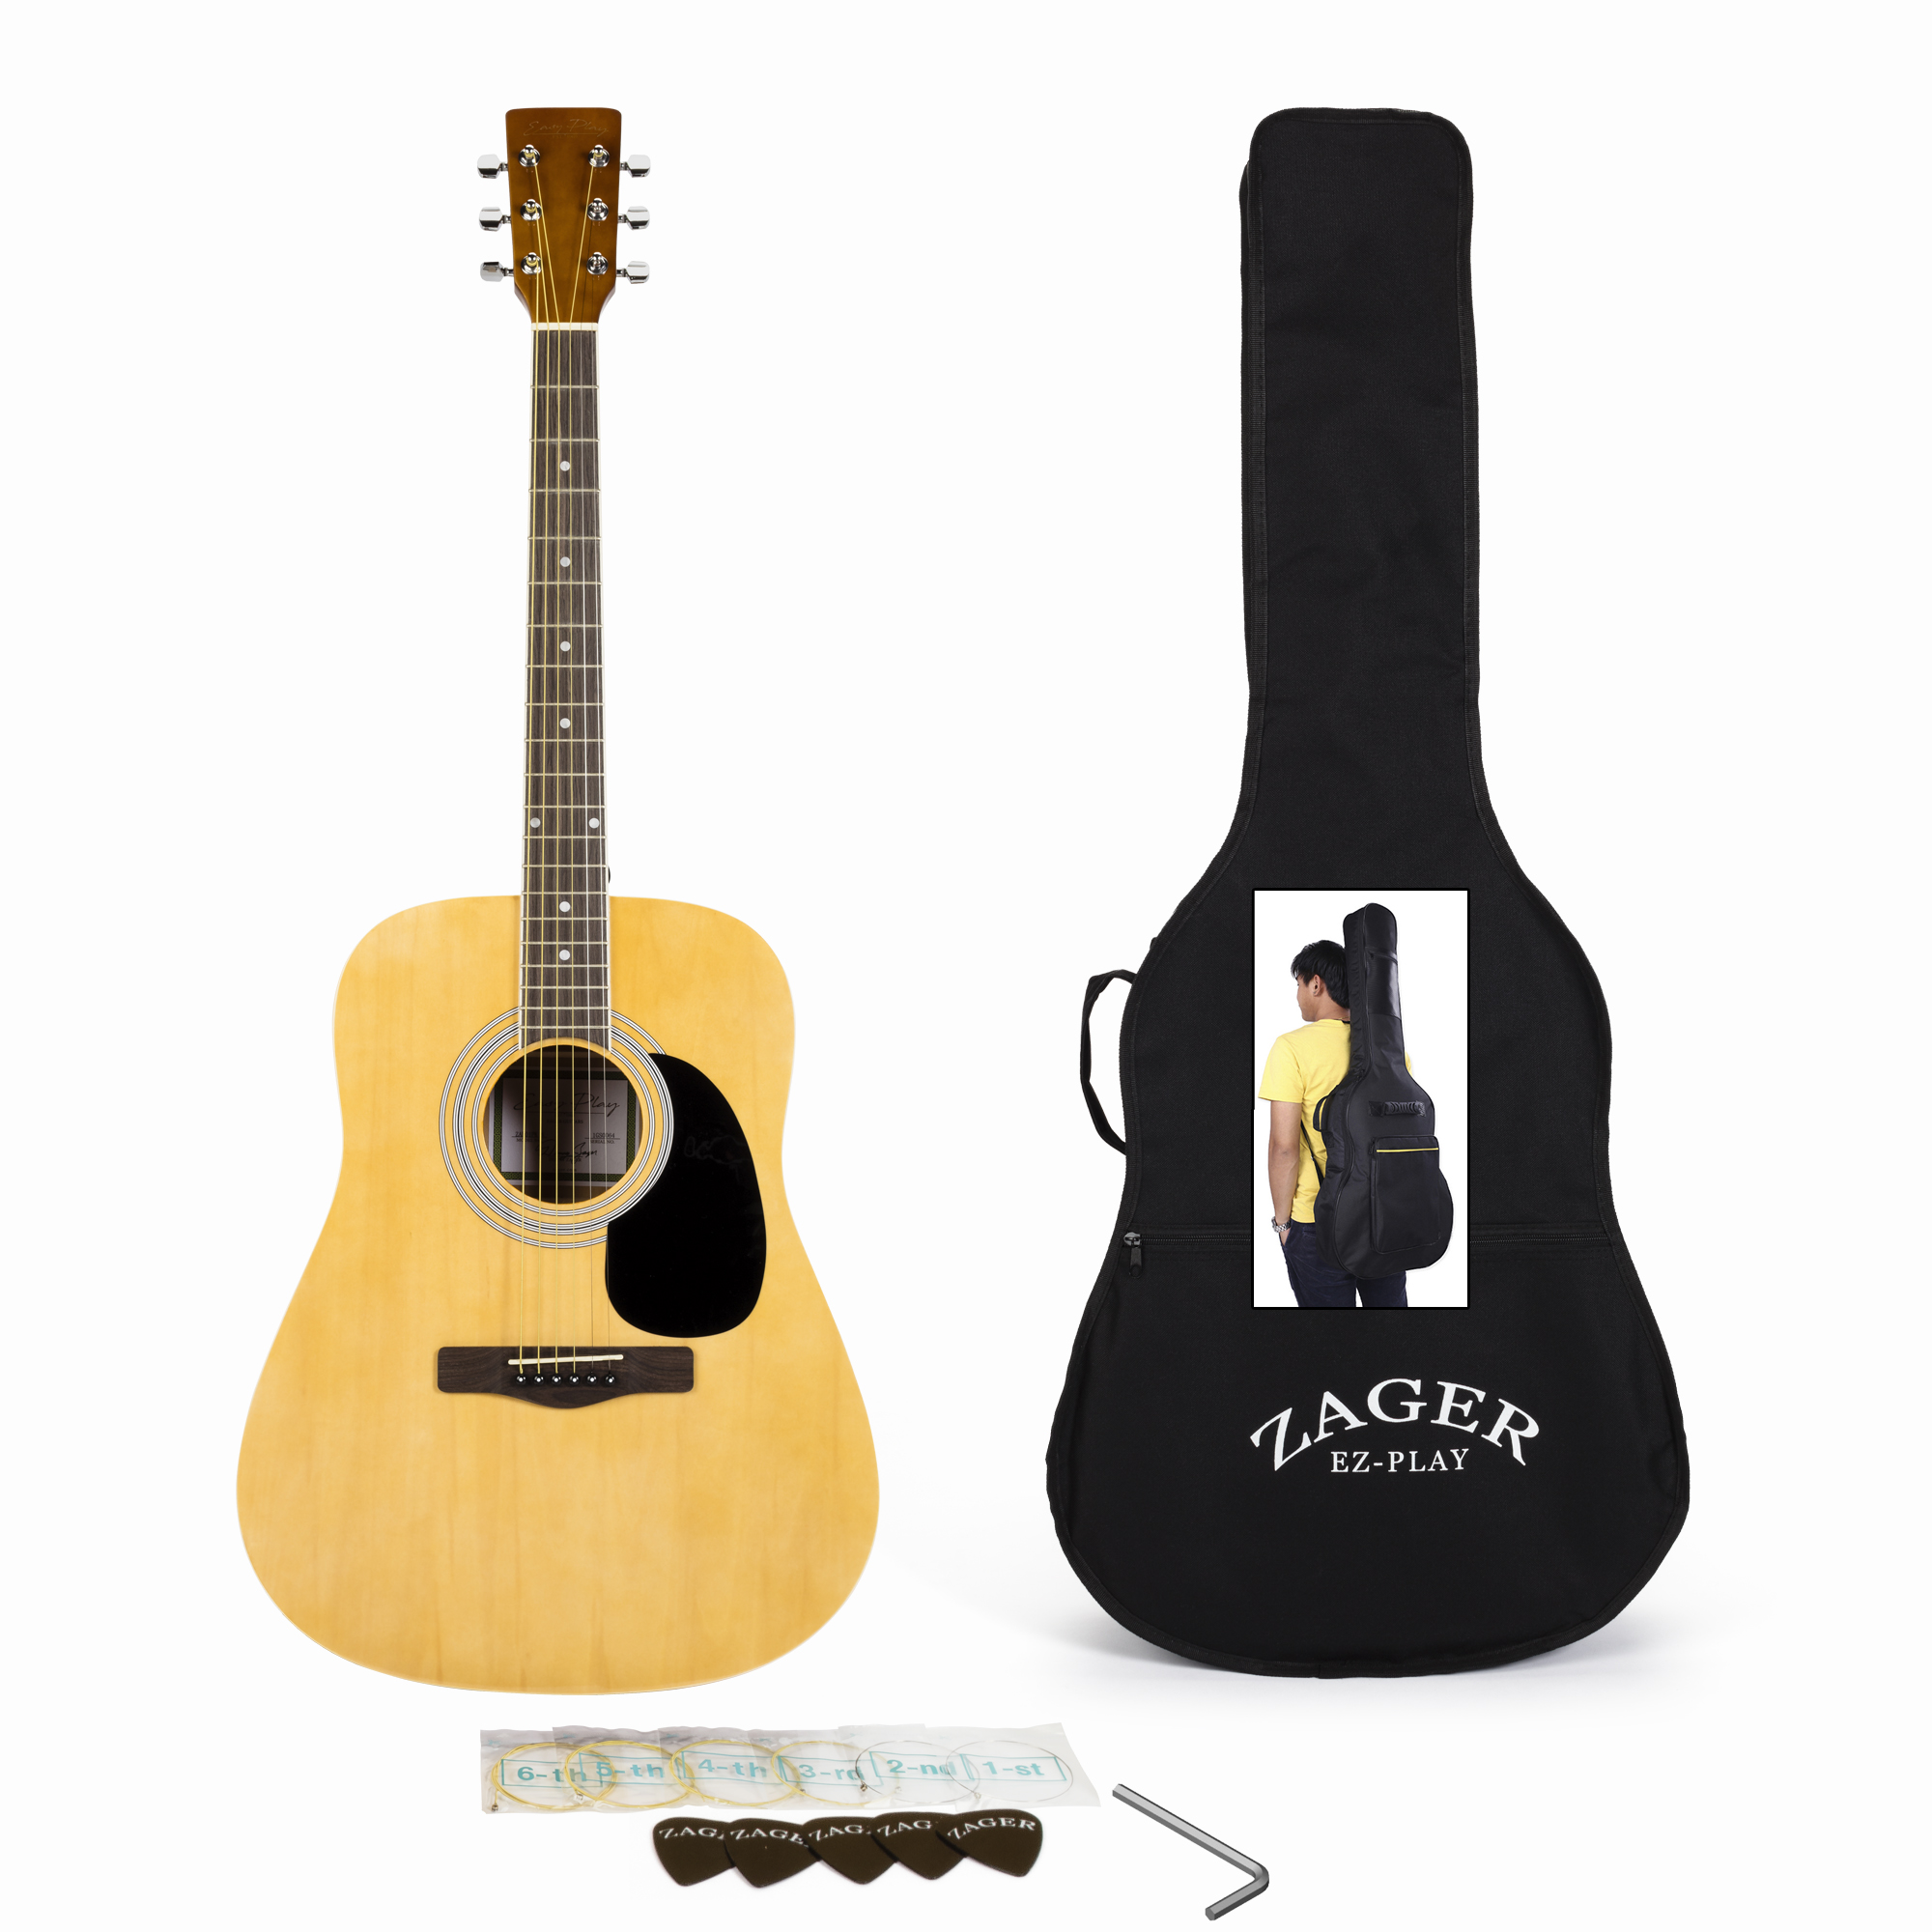 Easy Play No Sore Fingers Acoustic Guitar Player Package with Custom Easy Neck design, Low pressure bracing & Soft touch strings